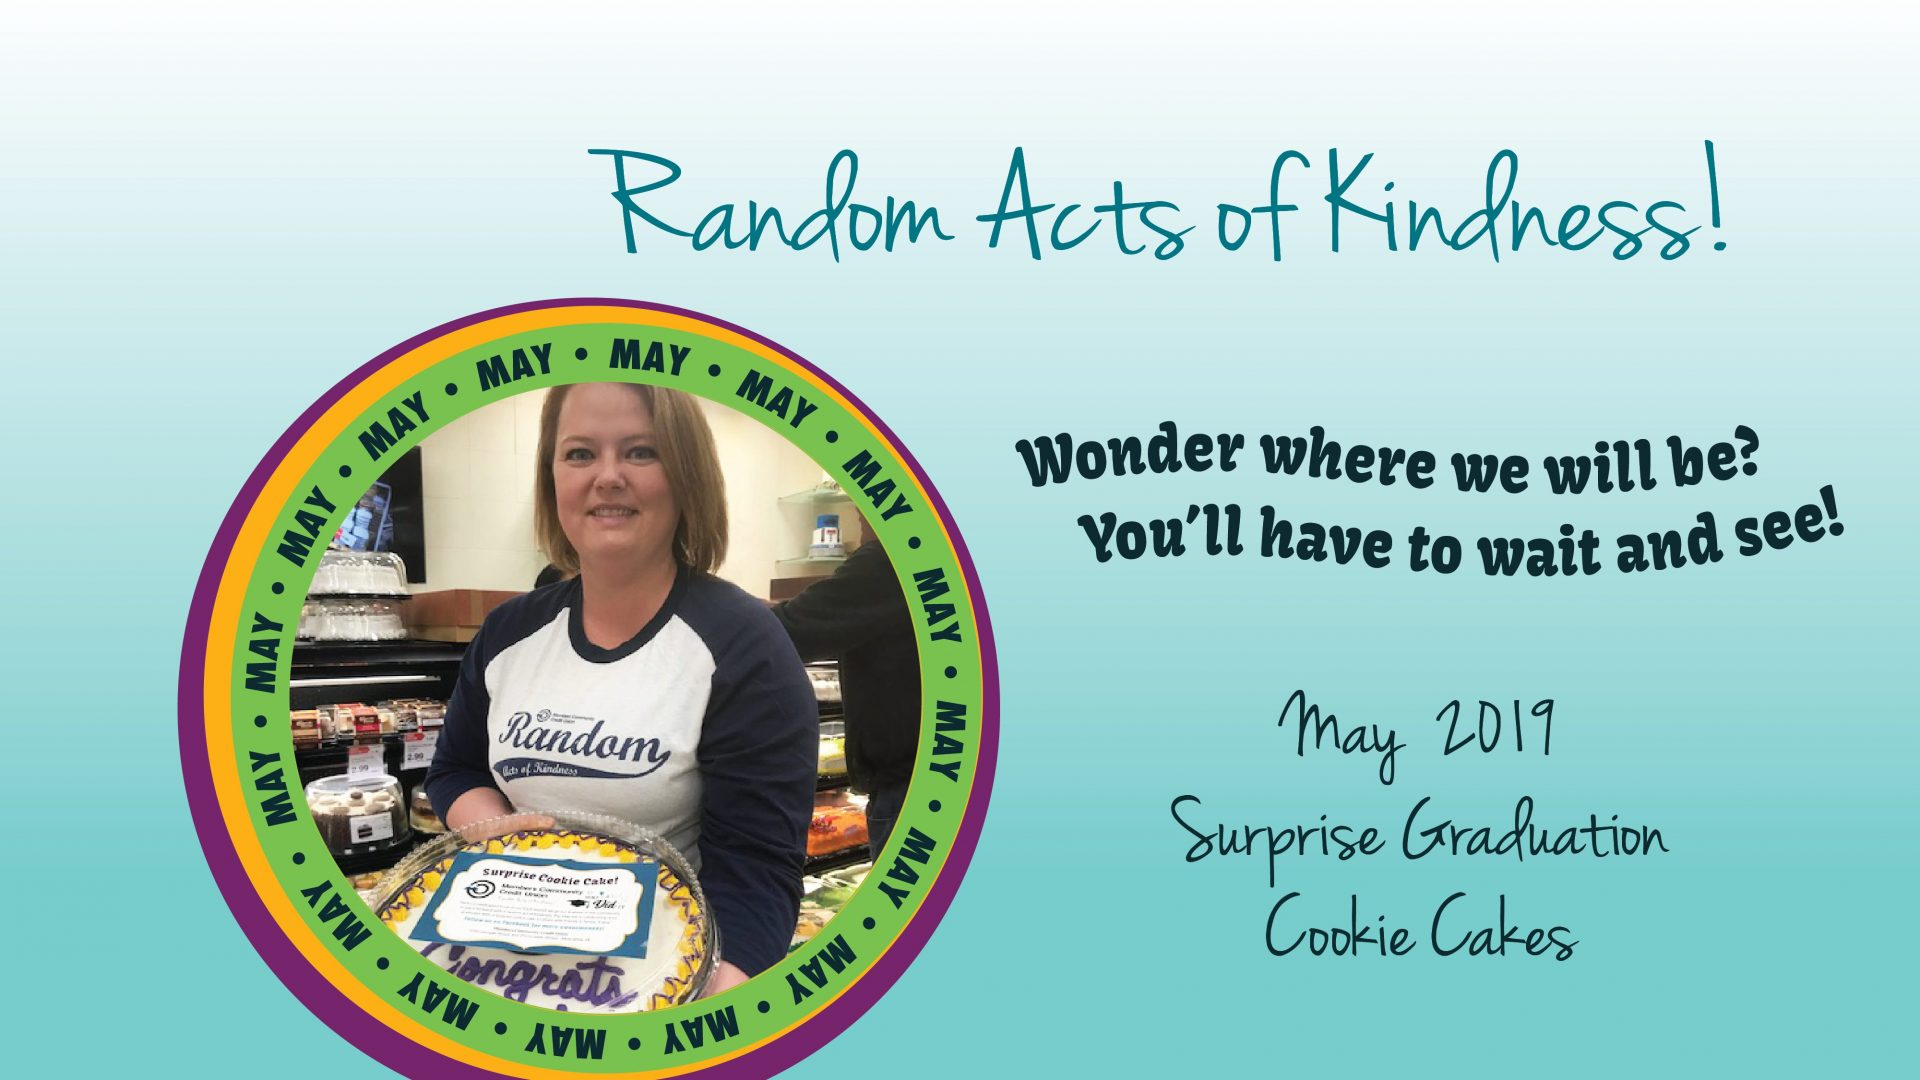 May 2019 Random Act of Kindness giving away bonus cookie cakes at HyVee with graduation cake orders.